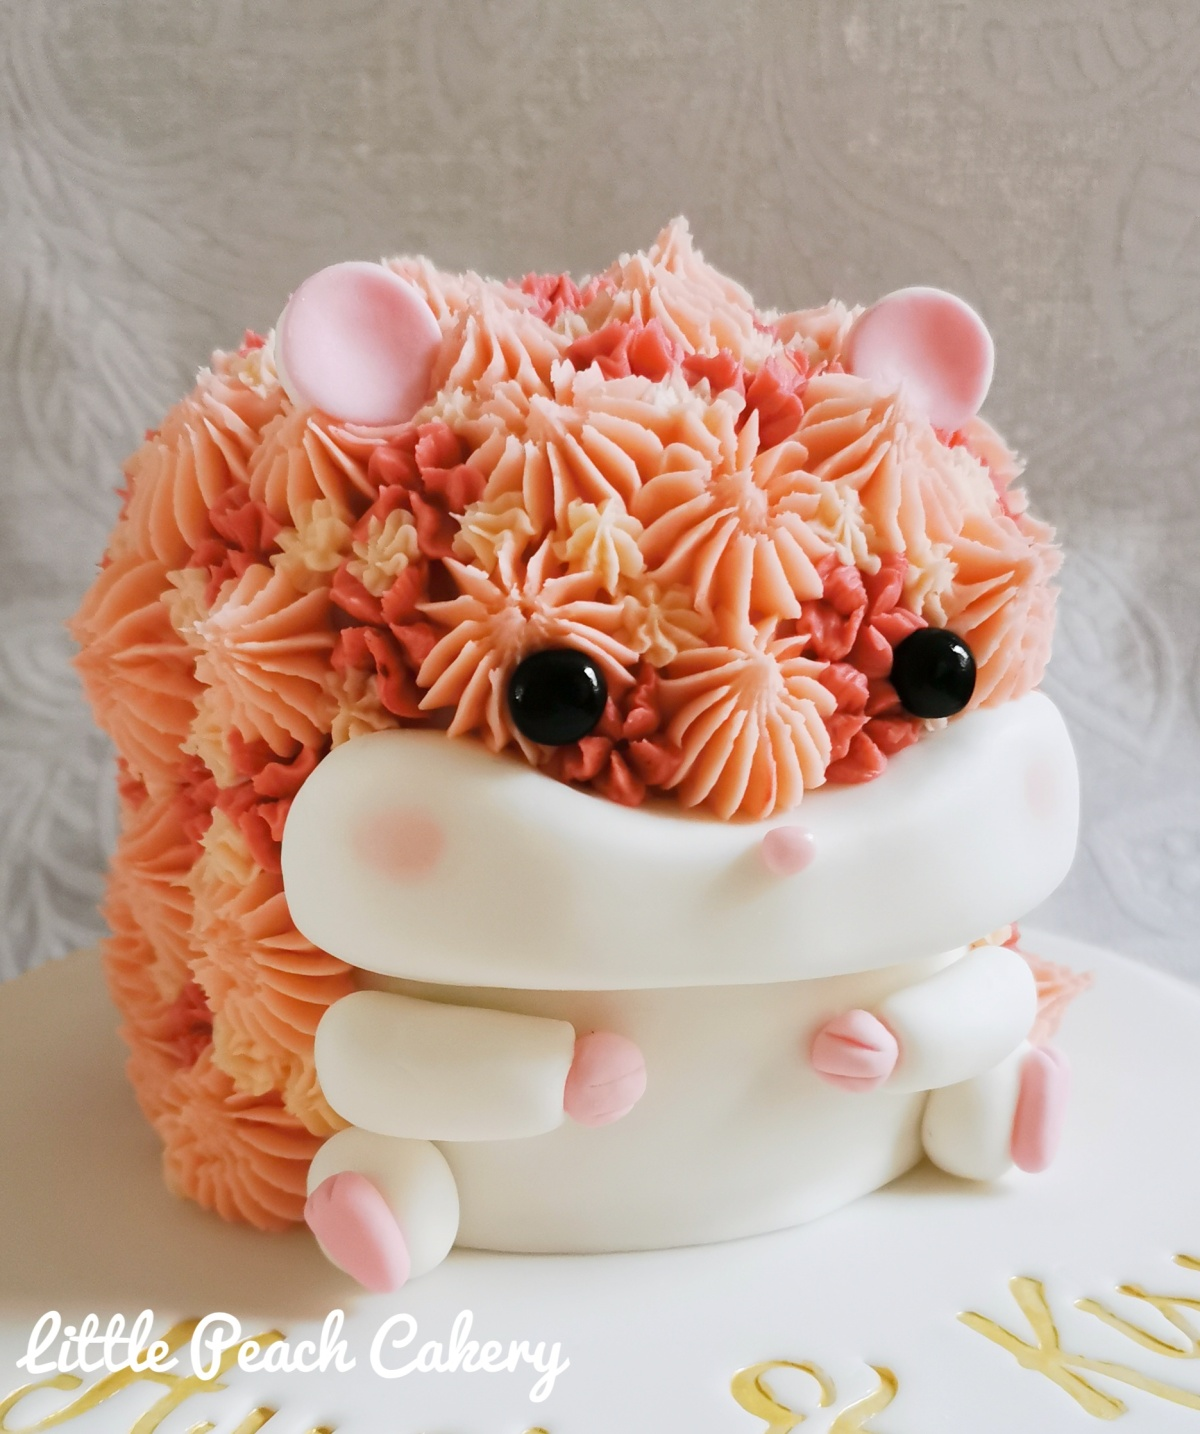 Cute Hamster Cake Tutorial